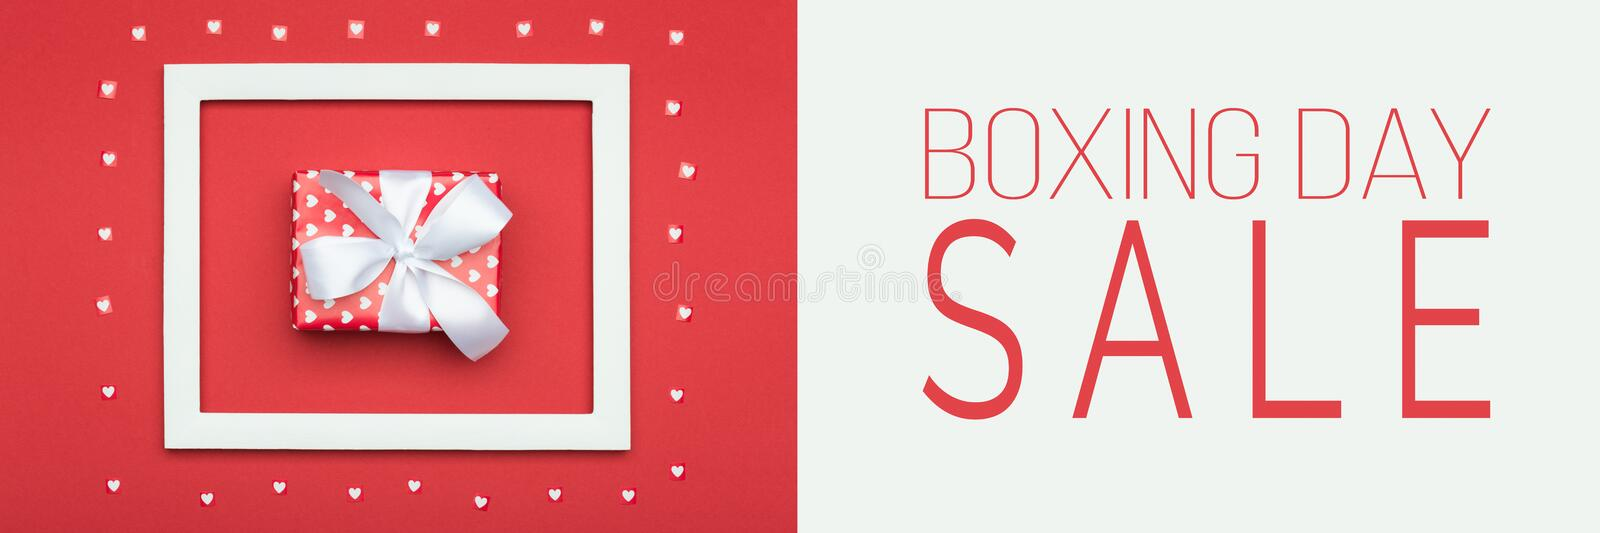 Boxing Day Sale banner. Festive winter holidays Christmas Sale background. stock photo